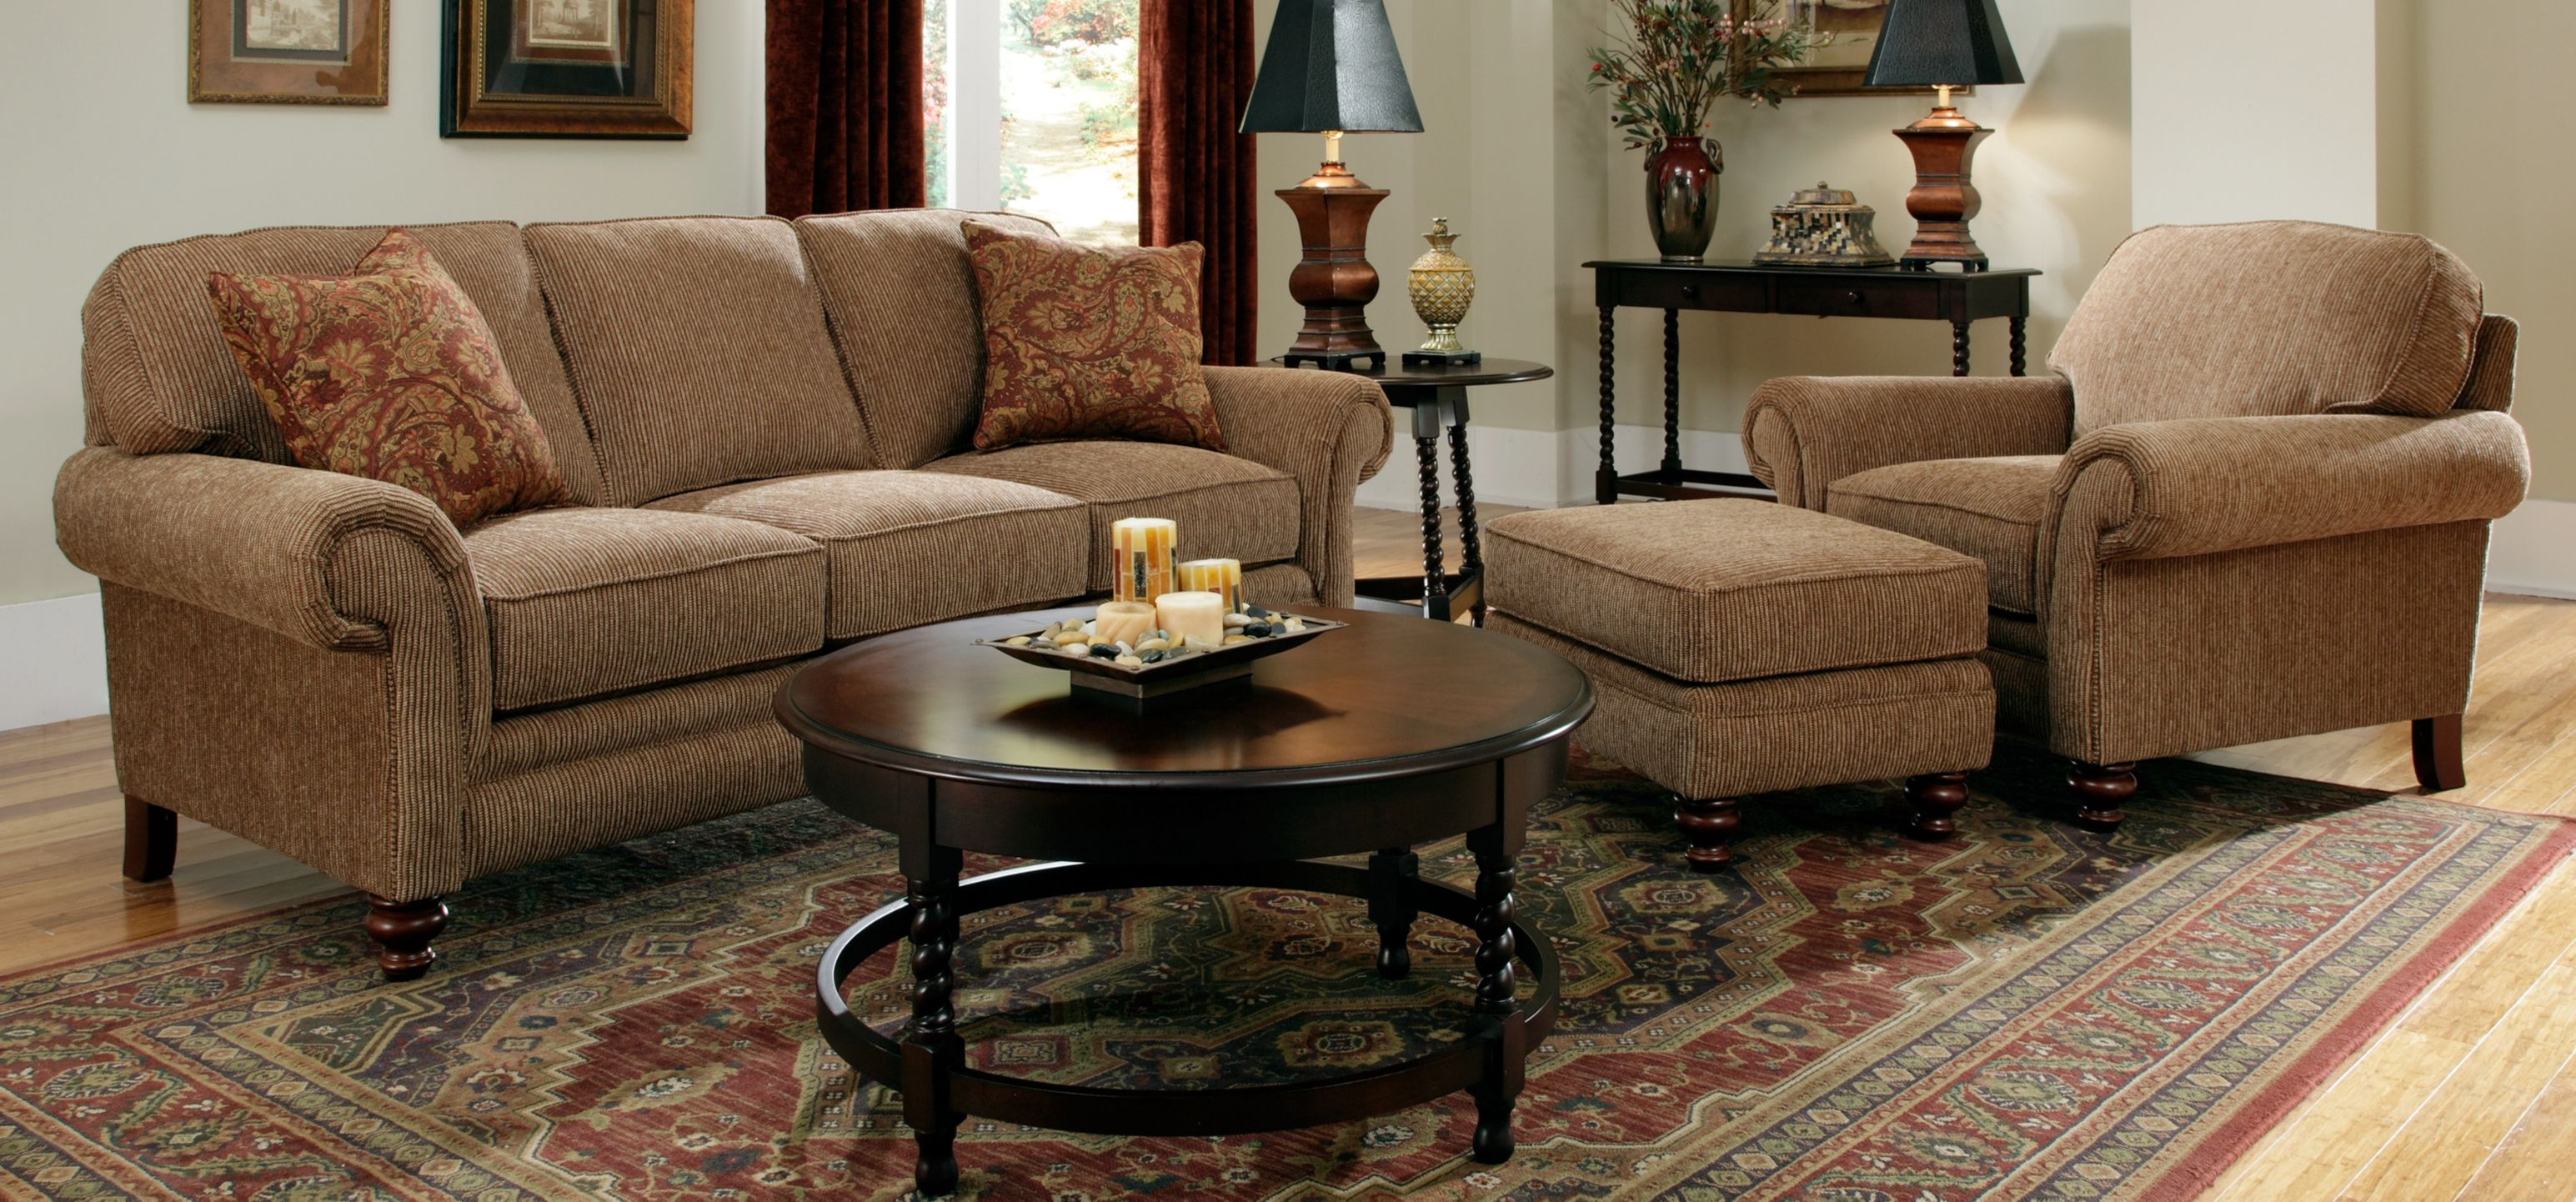 broyhill larissa big lots furniture furniture on big lots furniture sets id=28993